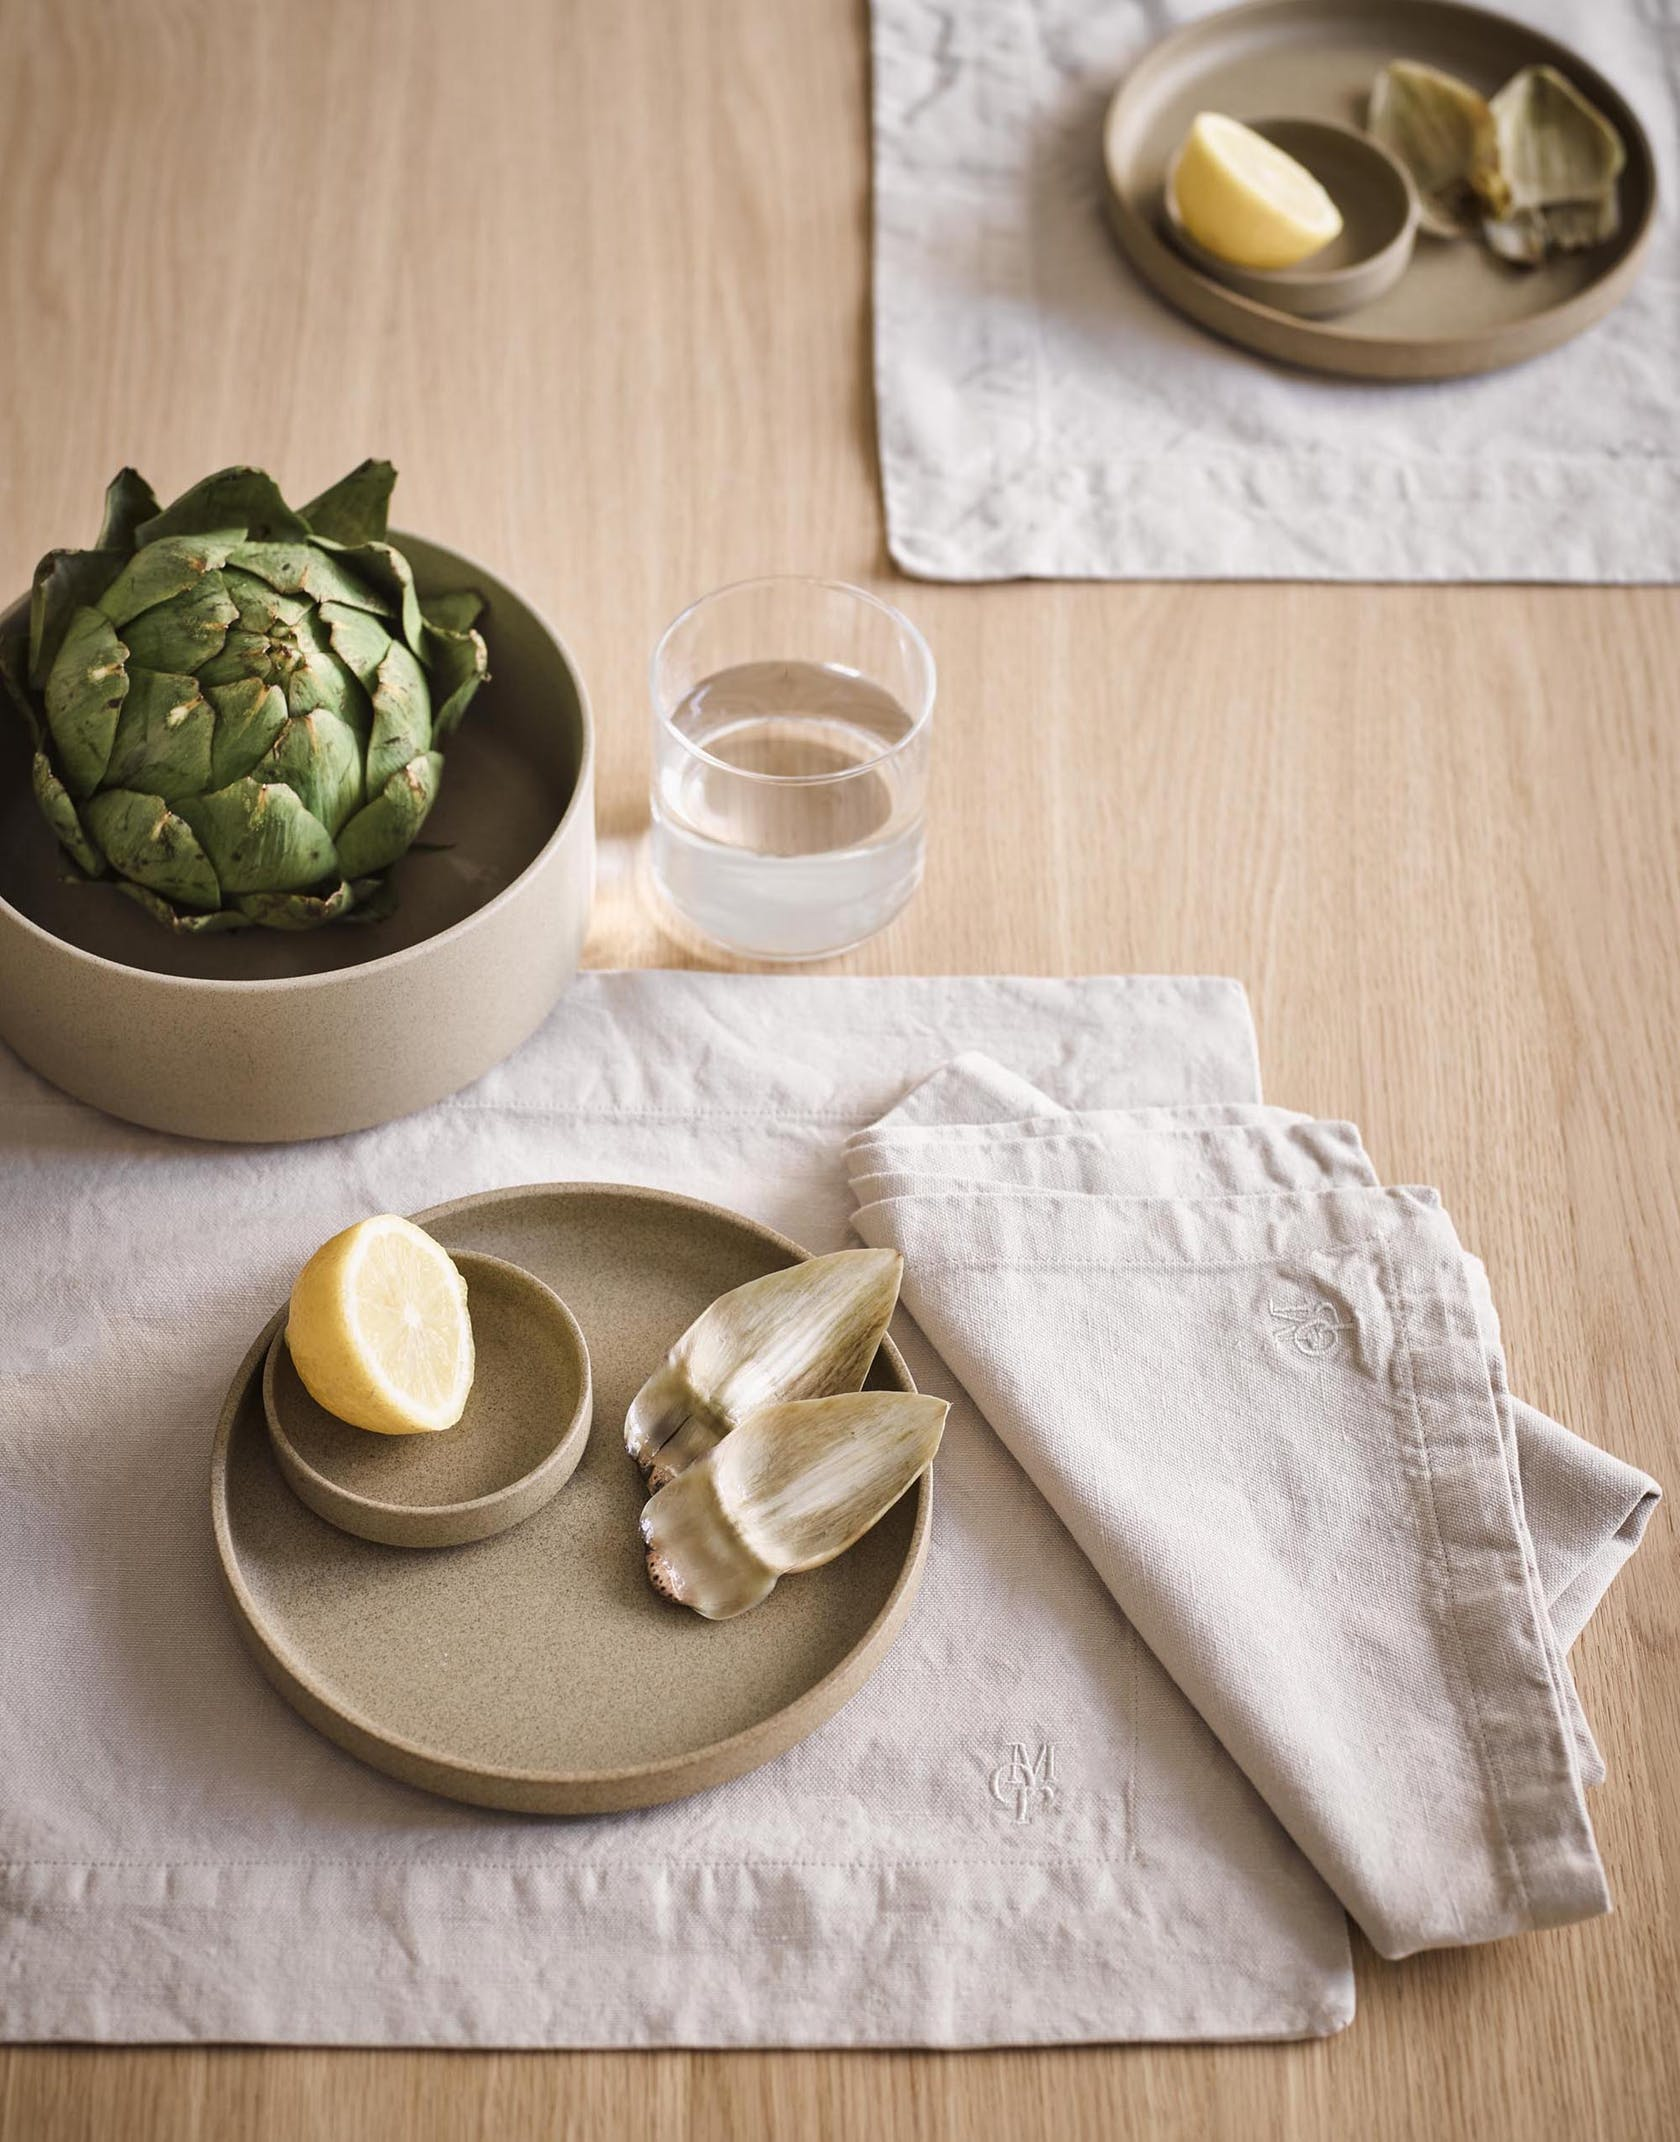 MARC O'POLO sustainable table and kitchen textiles collection